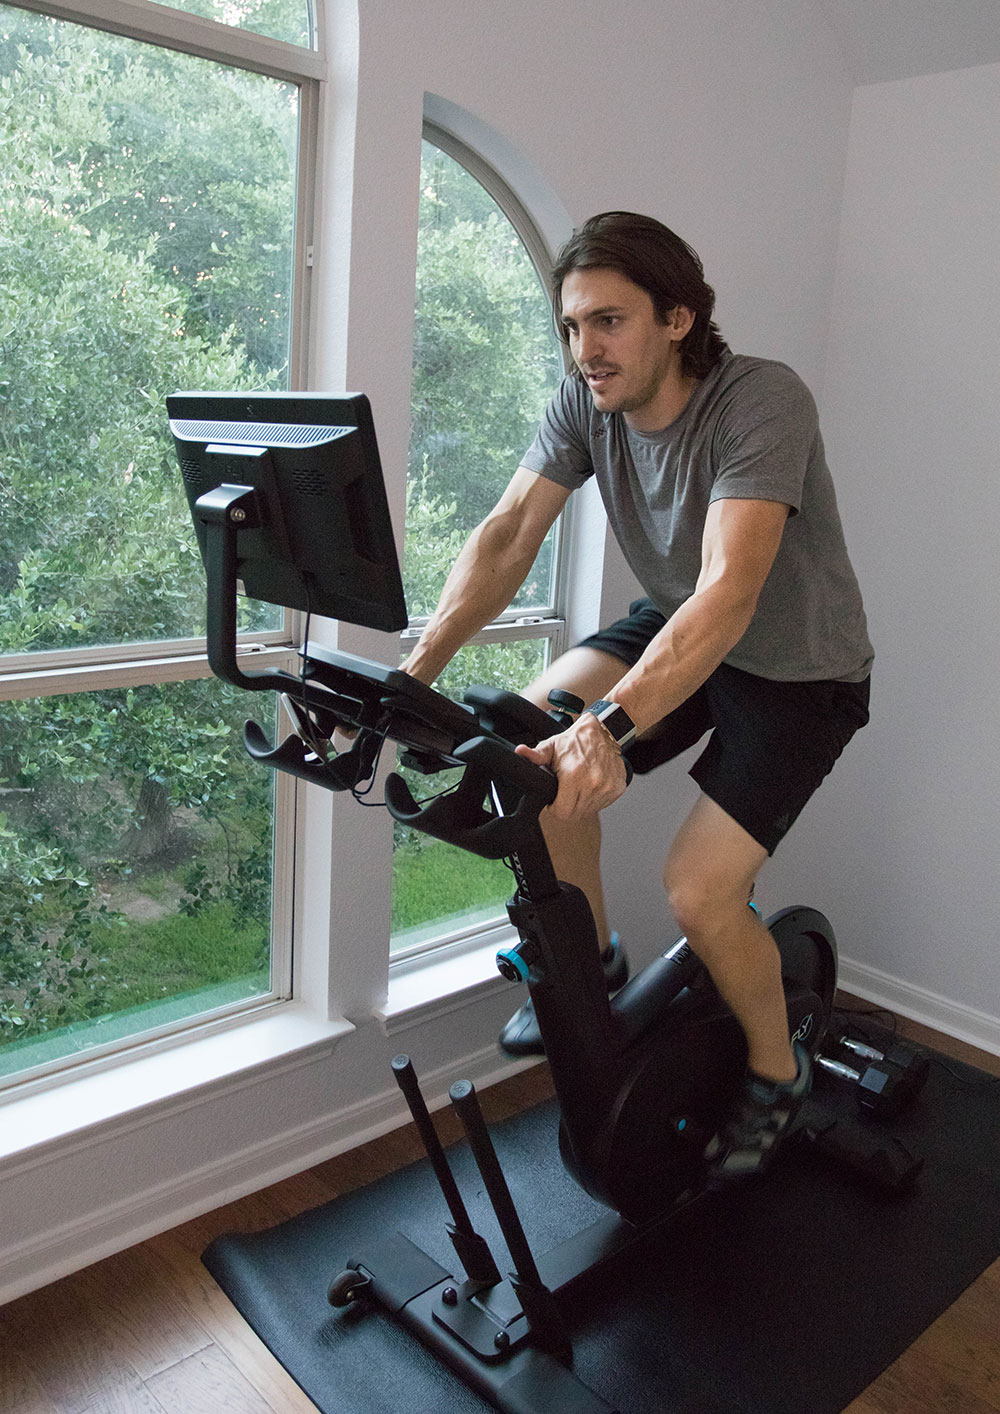 Working out on Spin Bike